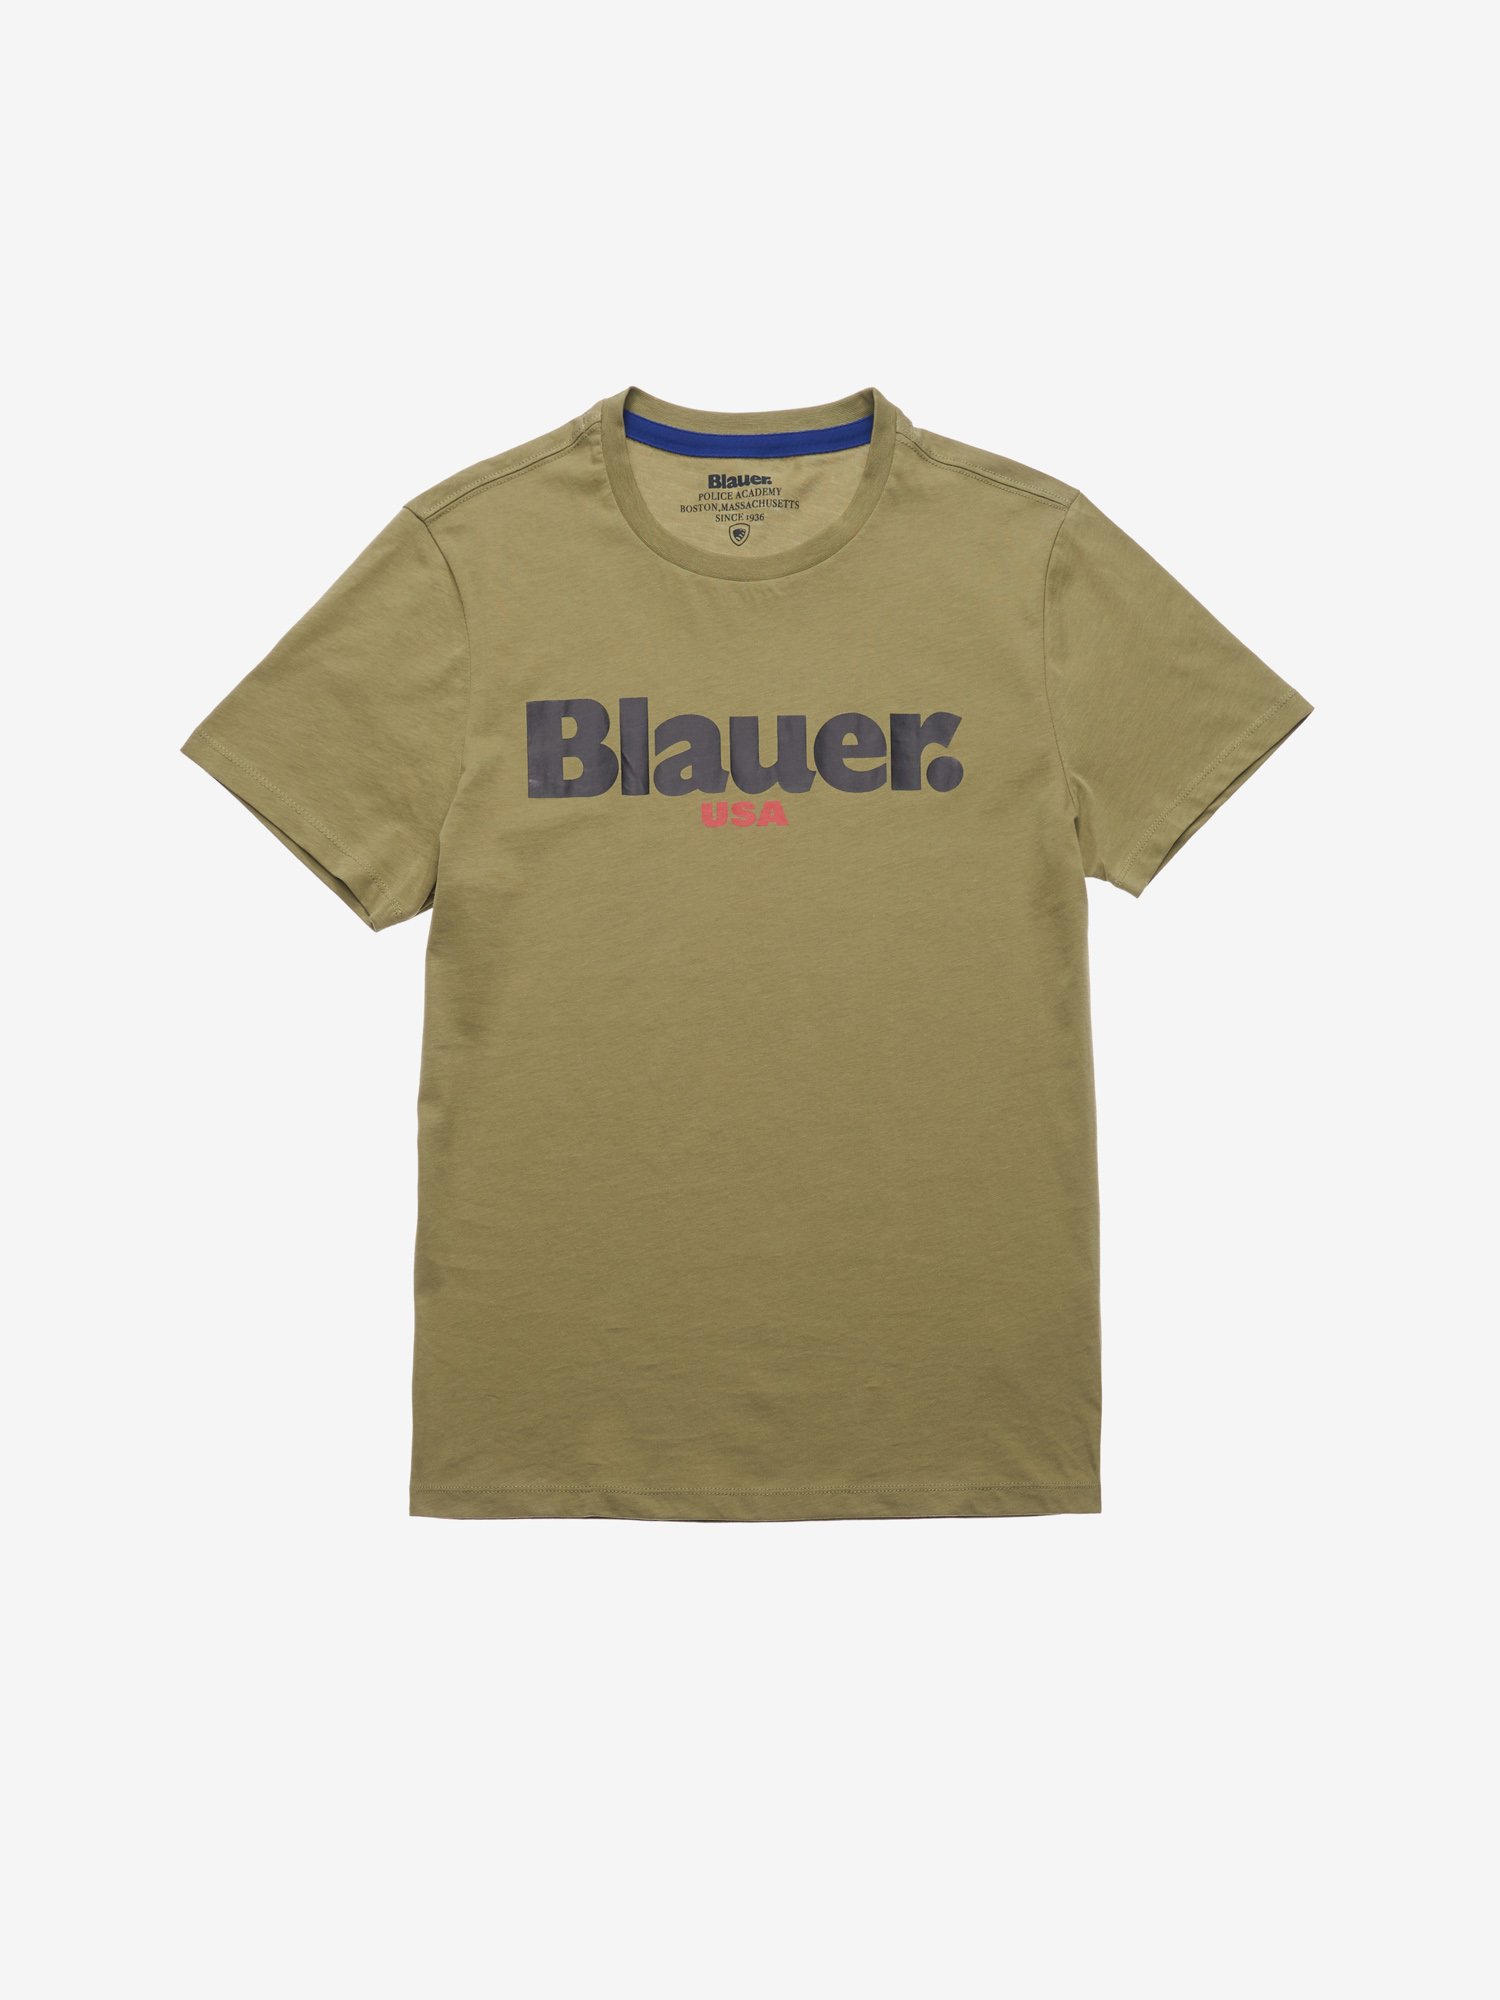 MEN'S BLAUER USA T-SHIRT - Blauer